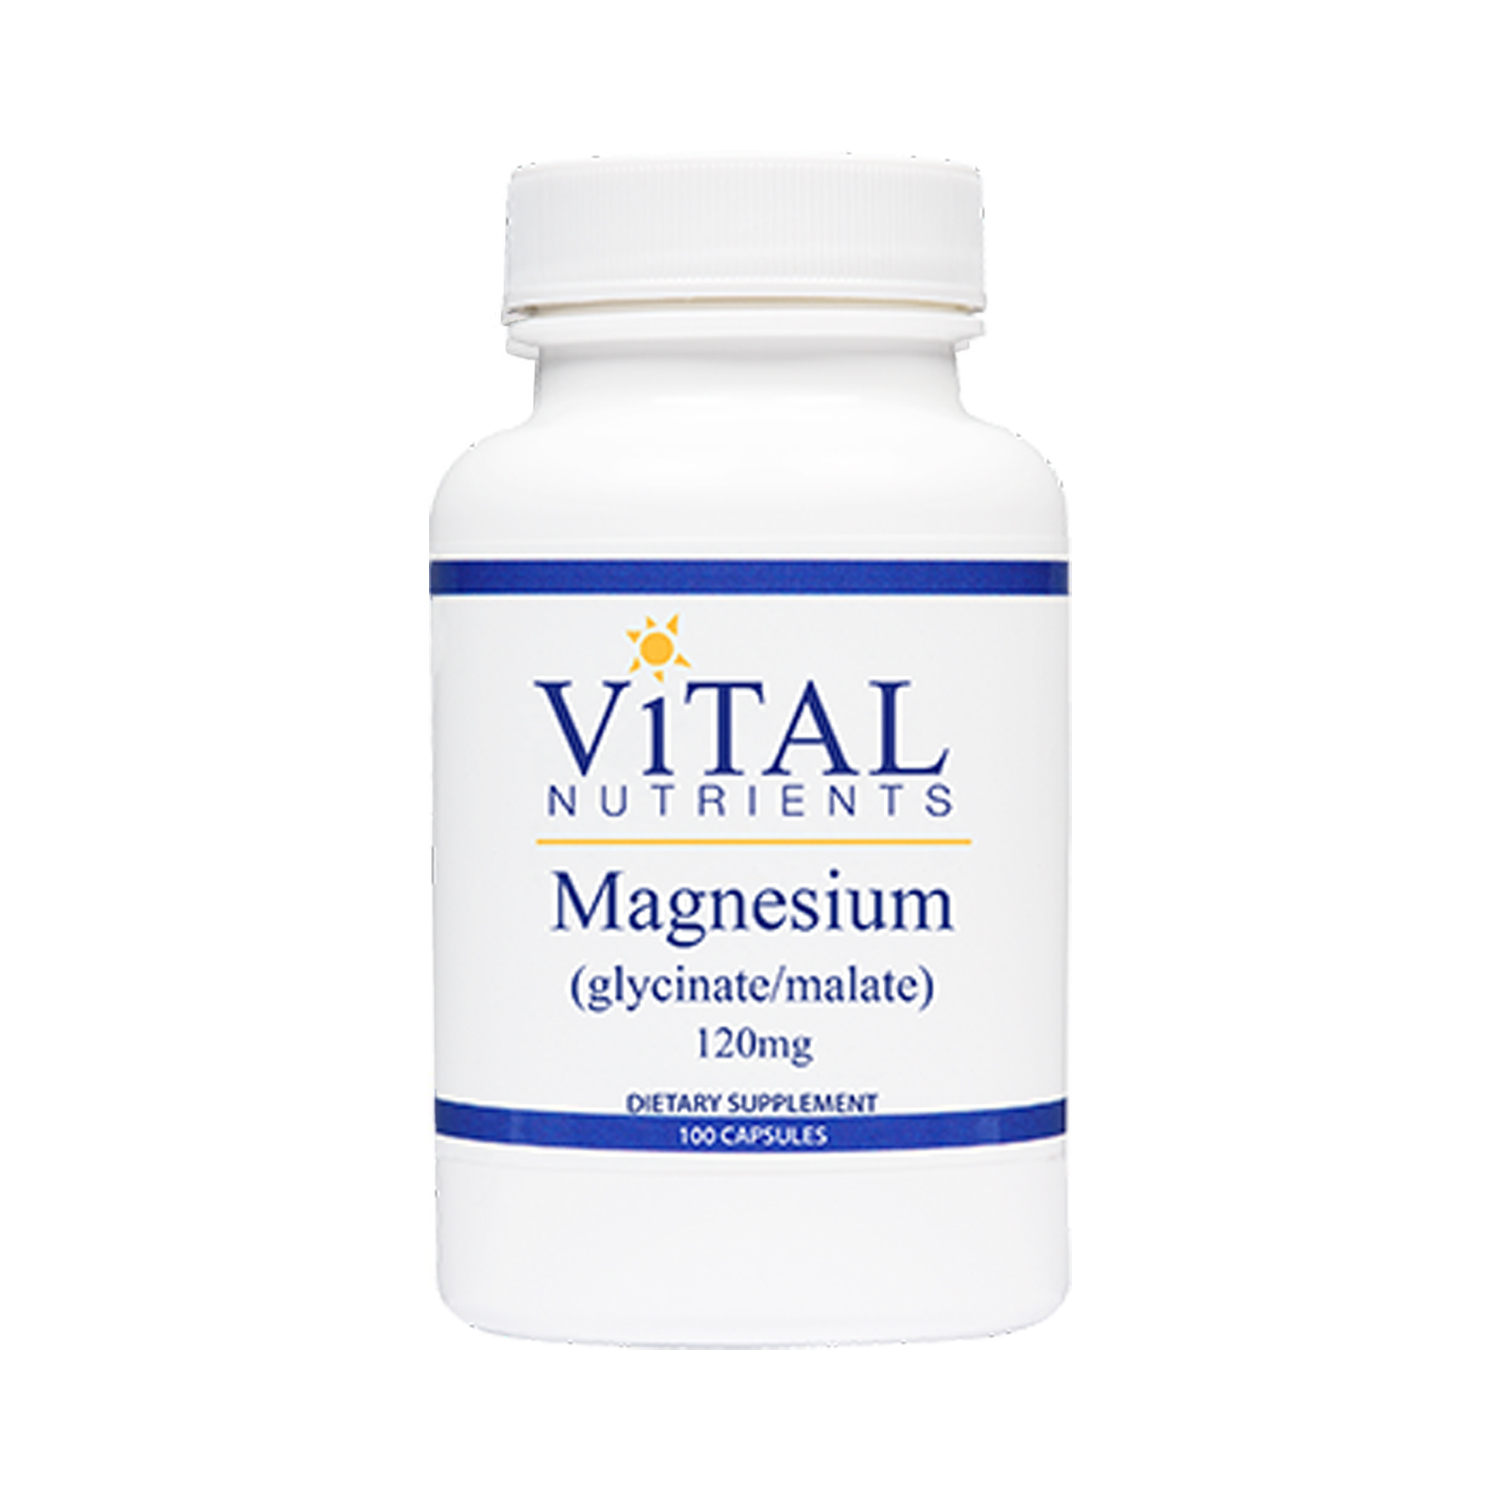 Magnesium (Glycinate/Malate) 120mg - 100 vCapsules